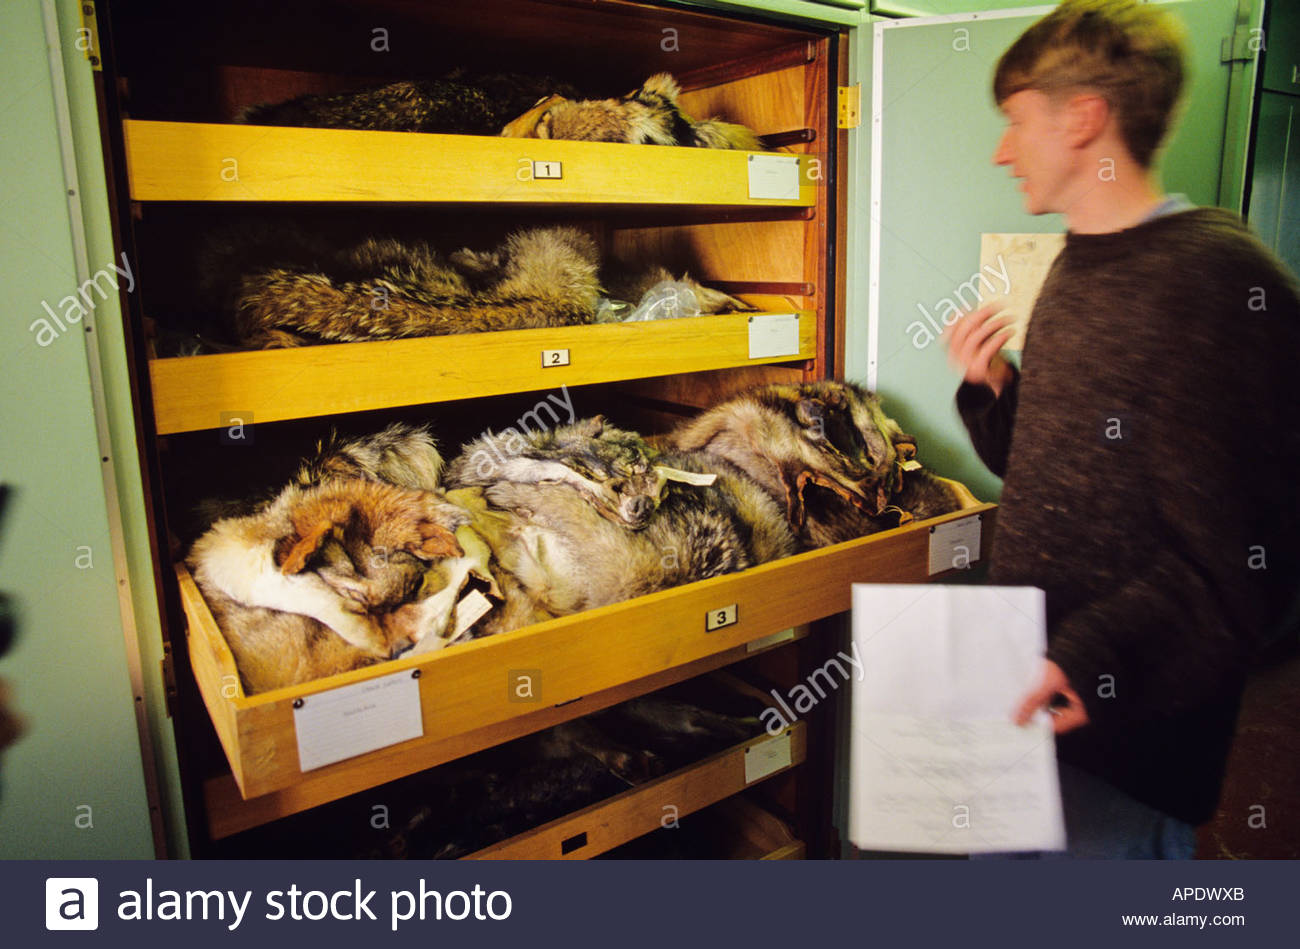 Natural History Museum, London: staff with specimens - Stock Image